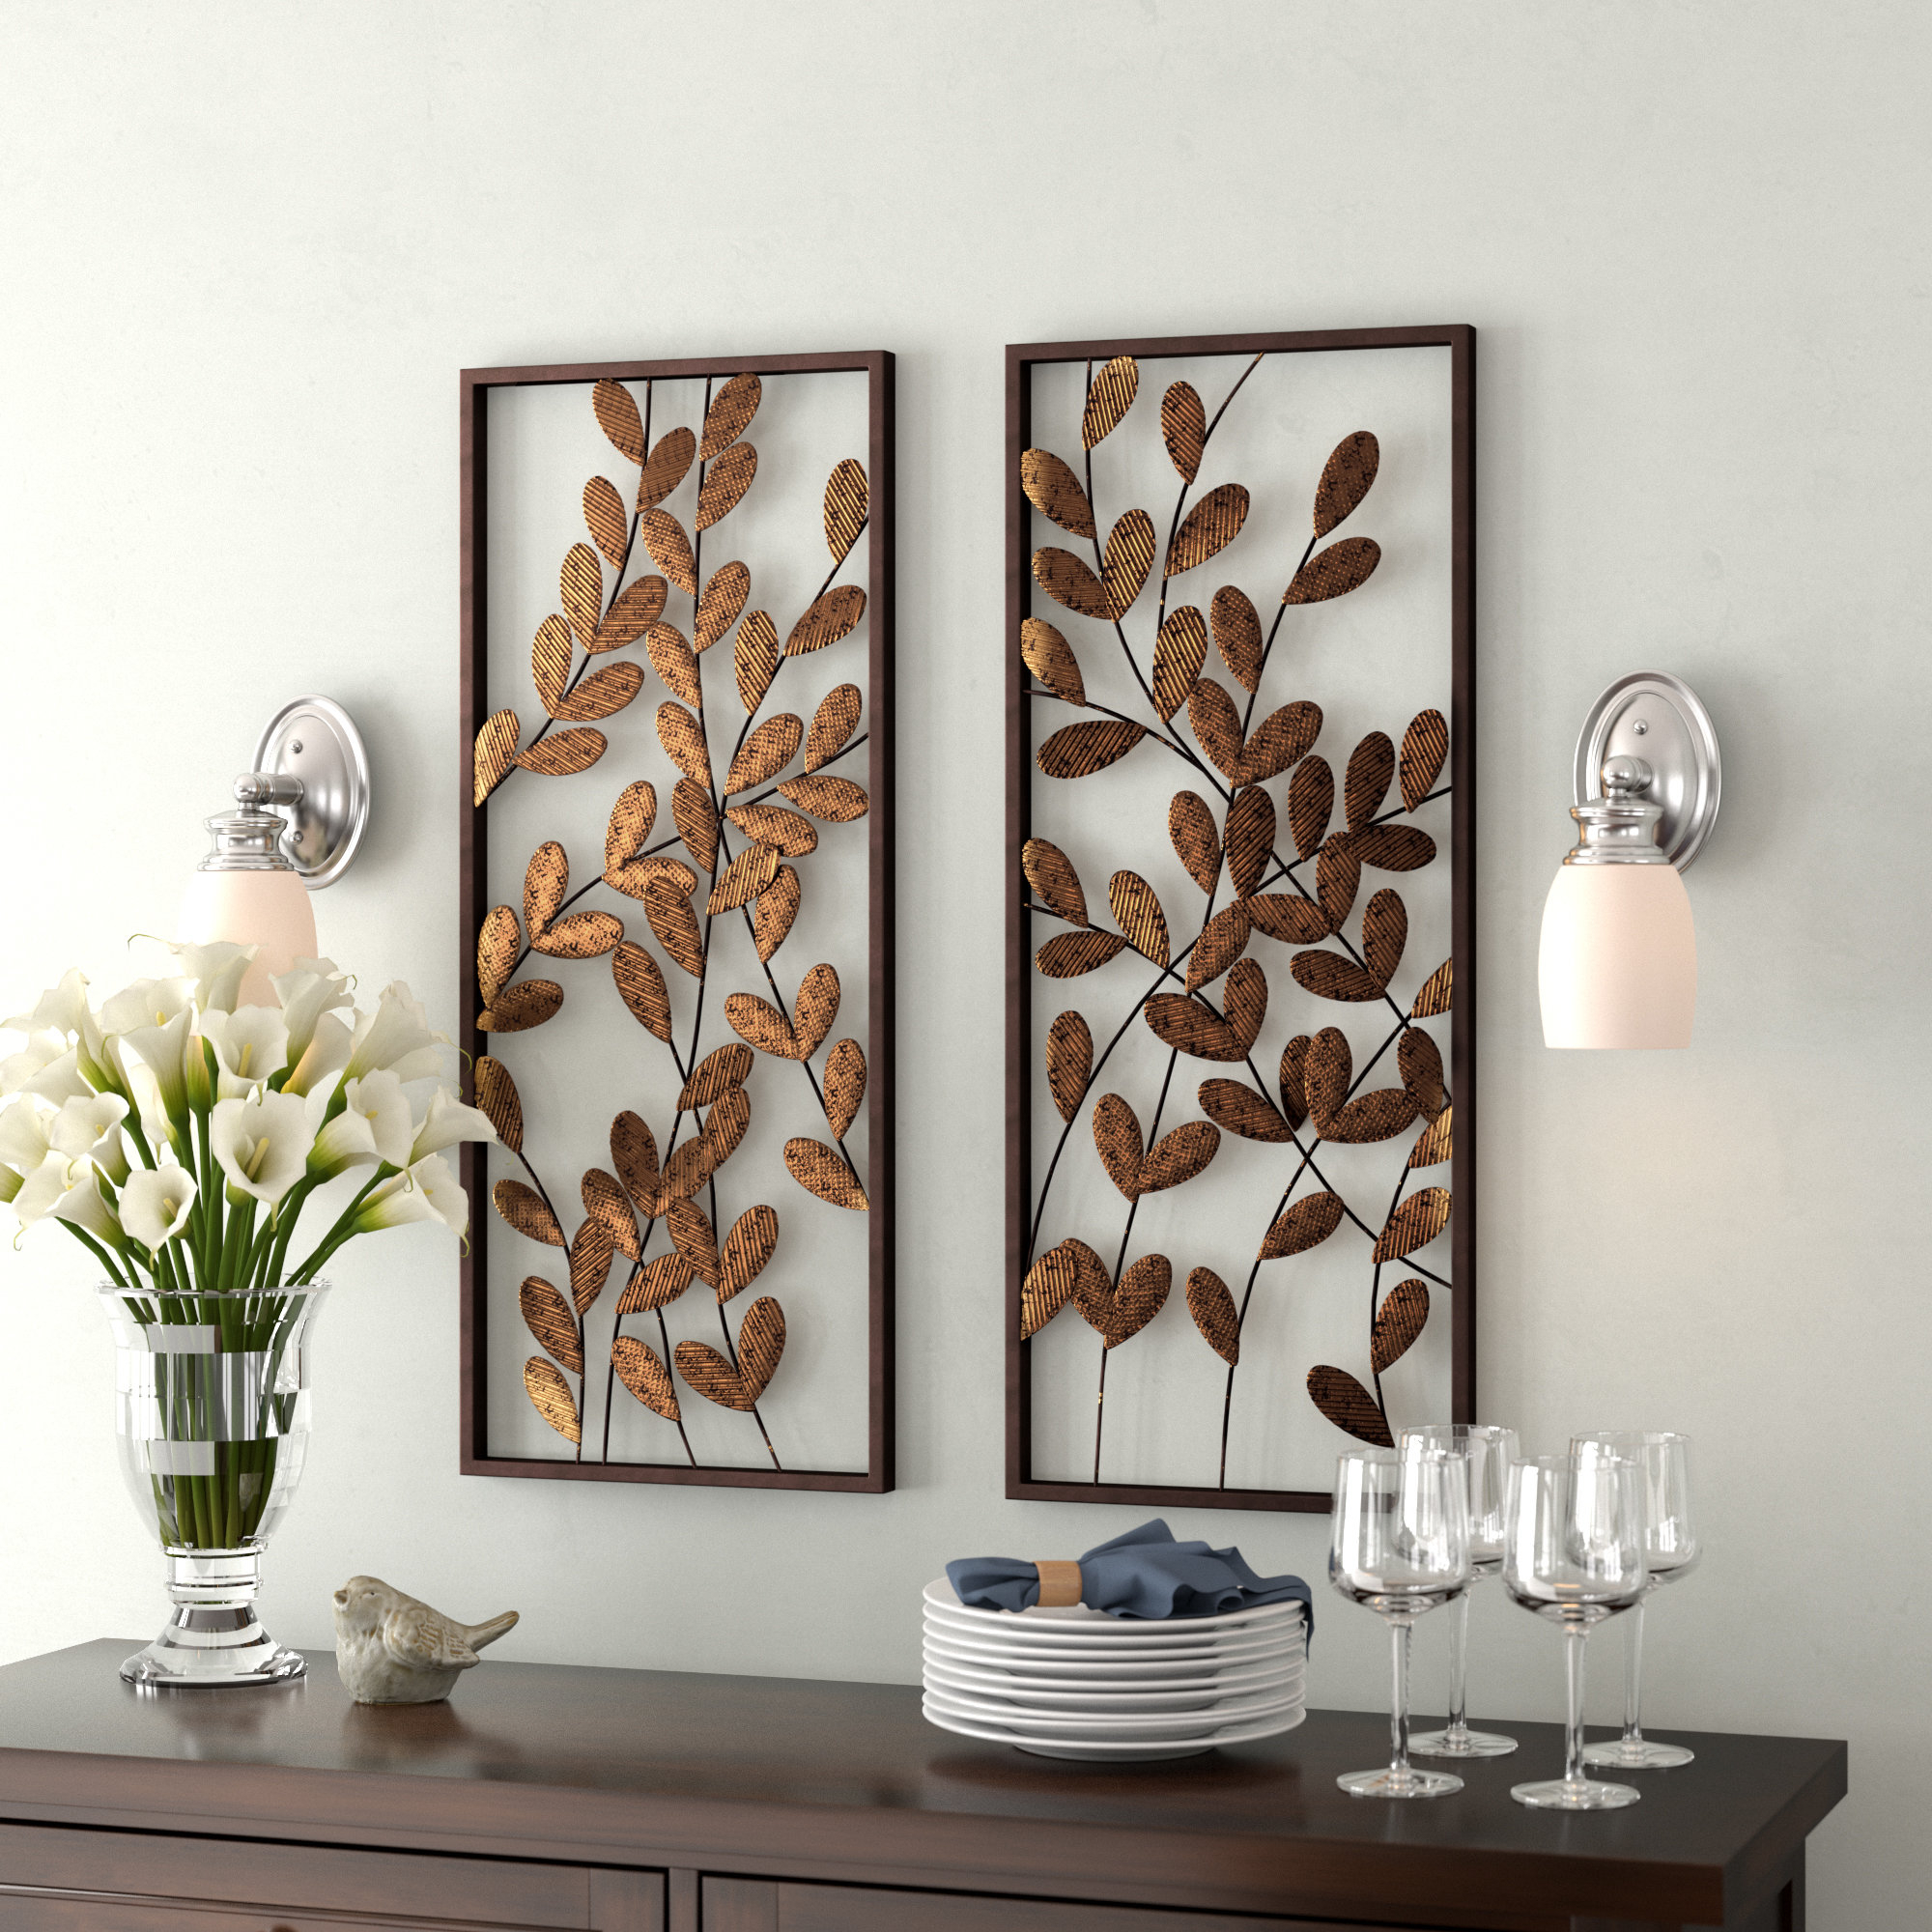 Wall Décor Pertaining To Wall Decor By World Menagerie (View 2 of 30)